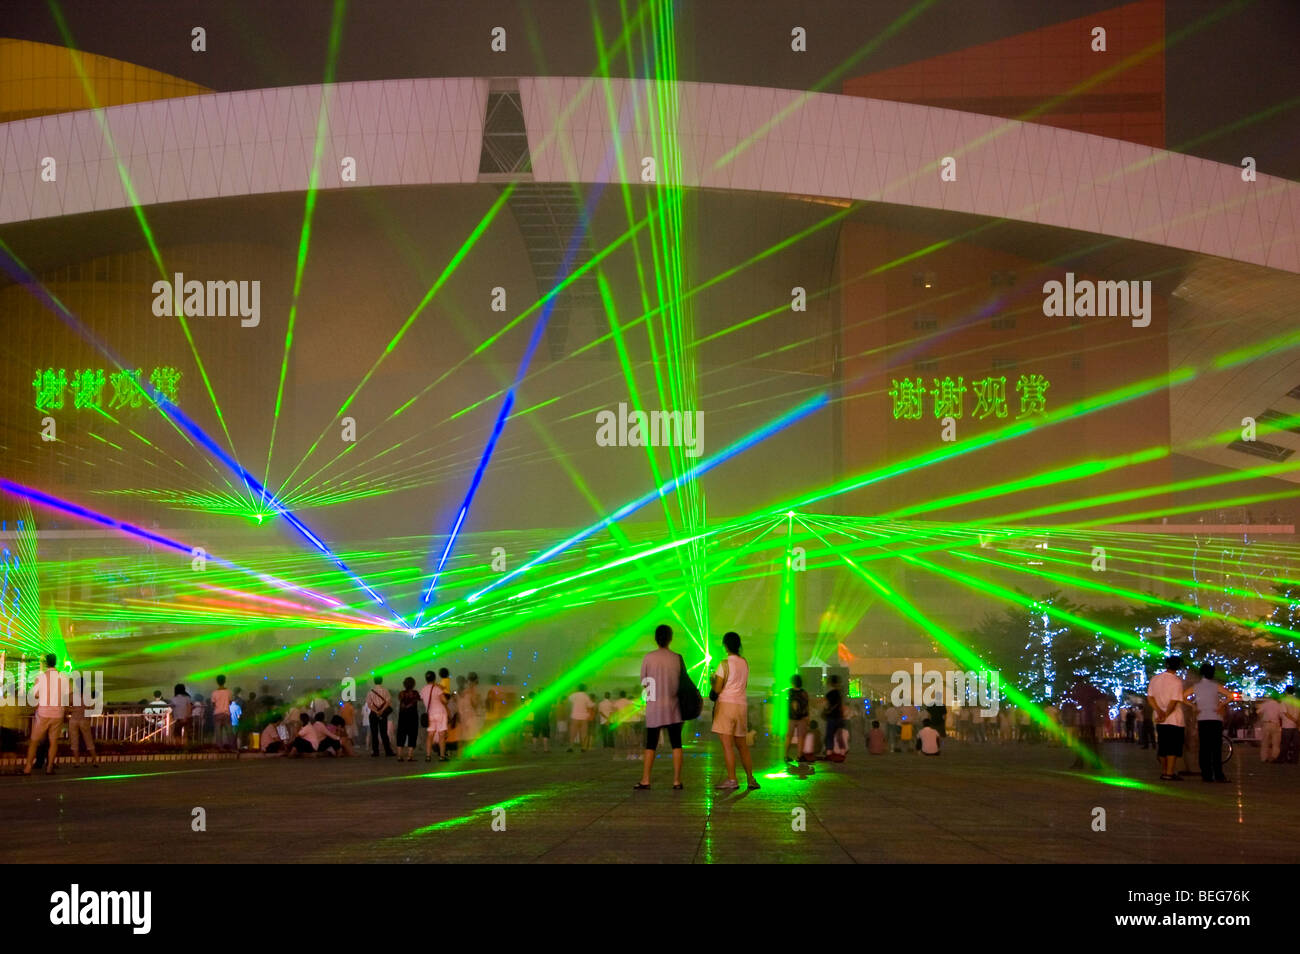 Shenzhen, China, 5th October 2009 - laser show for China National Day, 60th Anniversary of Independence. - Stock Image